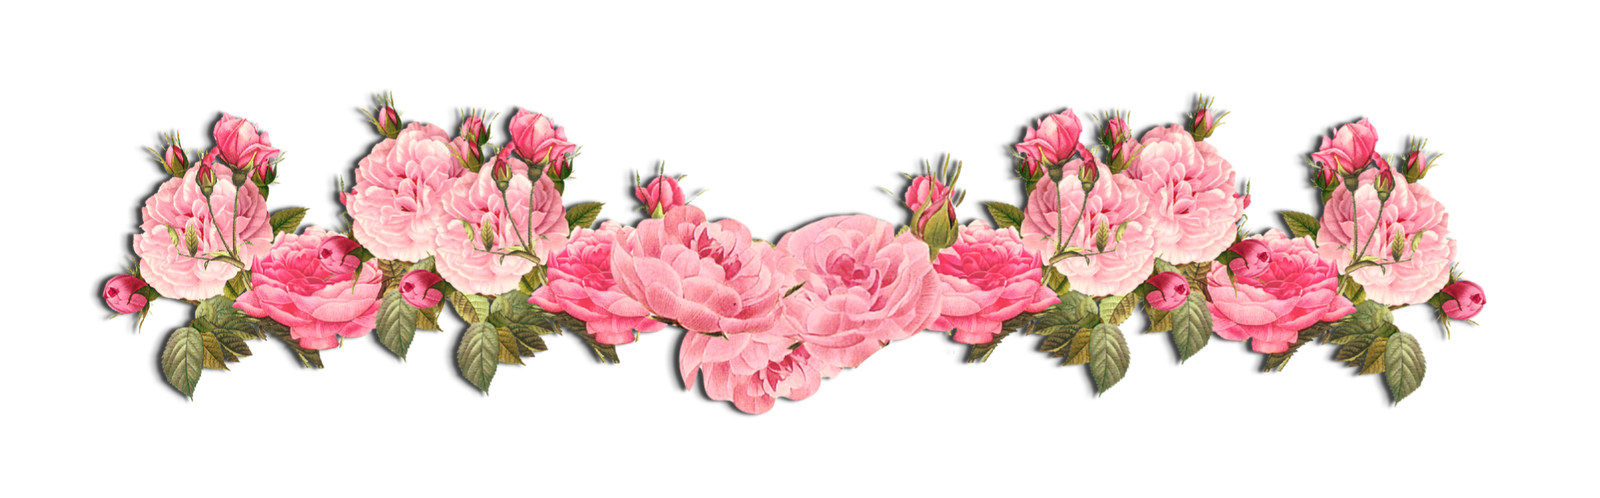 Row of flowers png. Xxlonely heartxx ouo deviantart